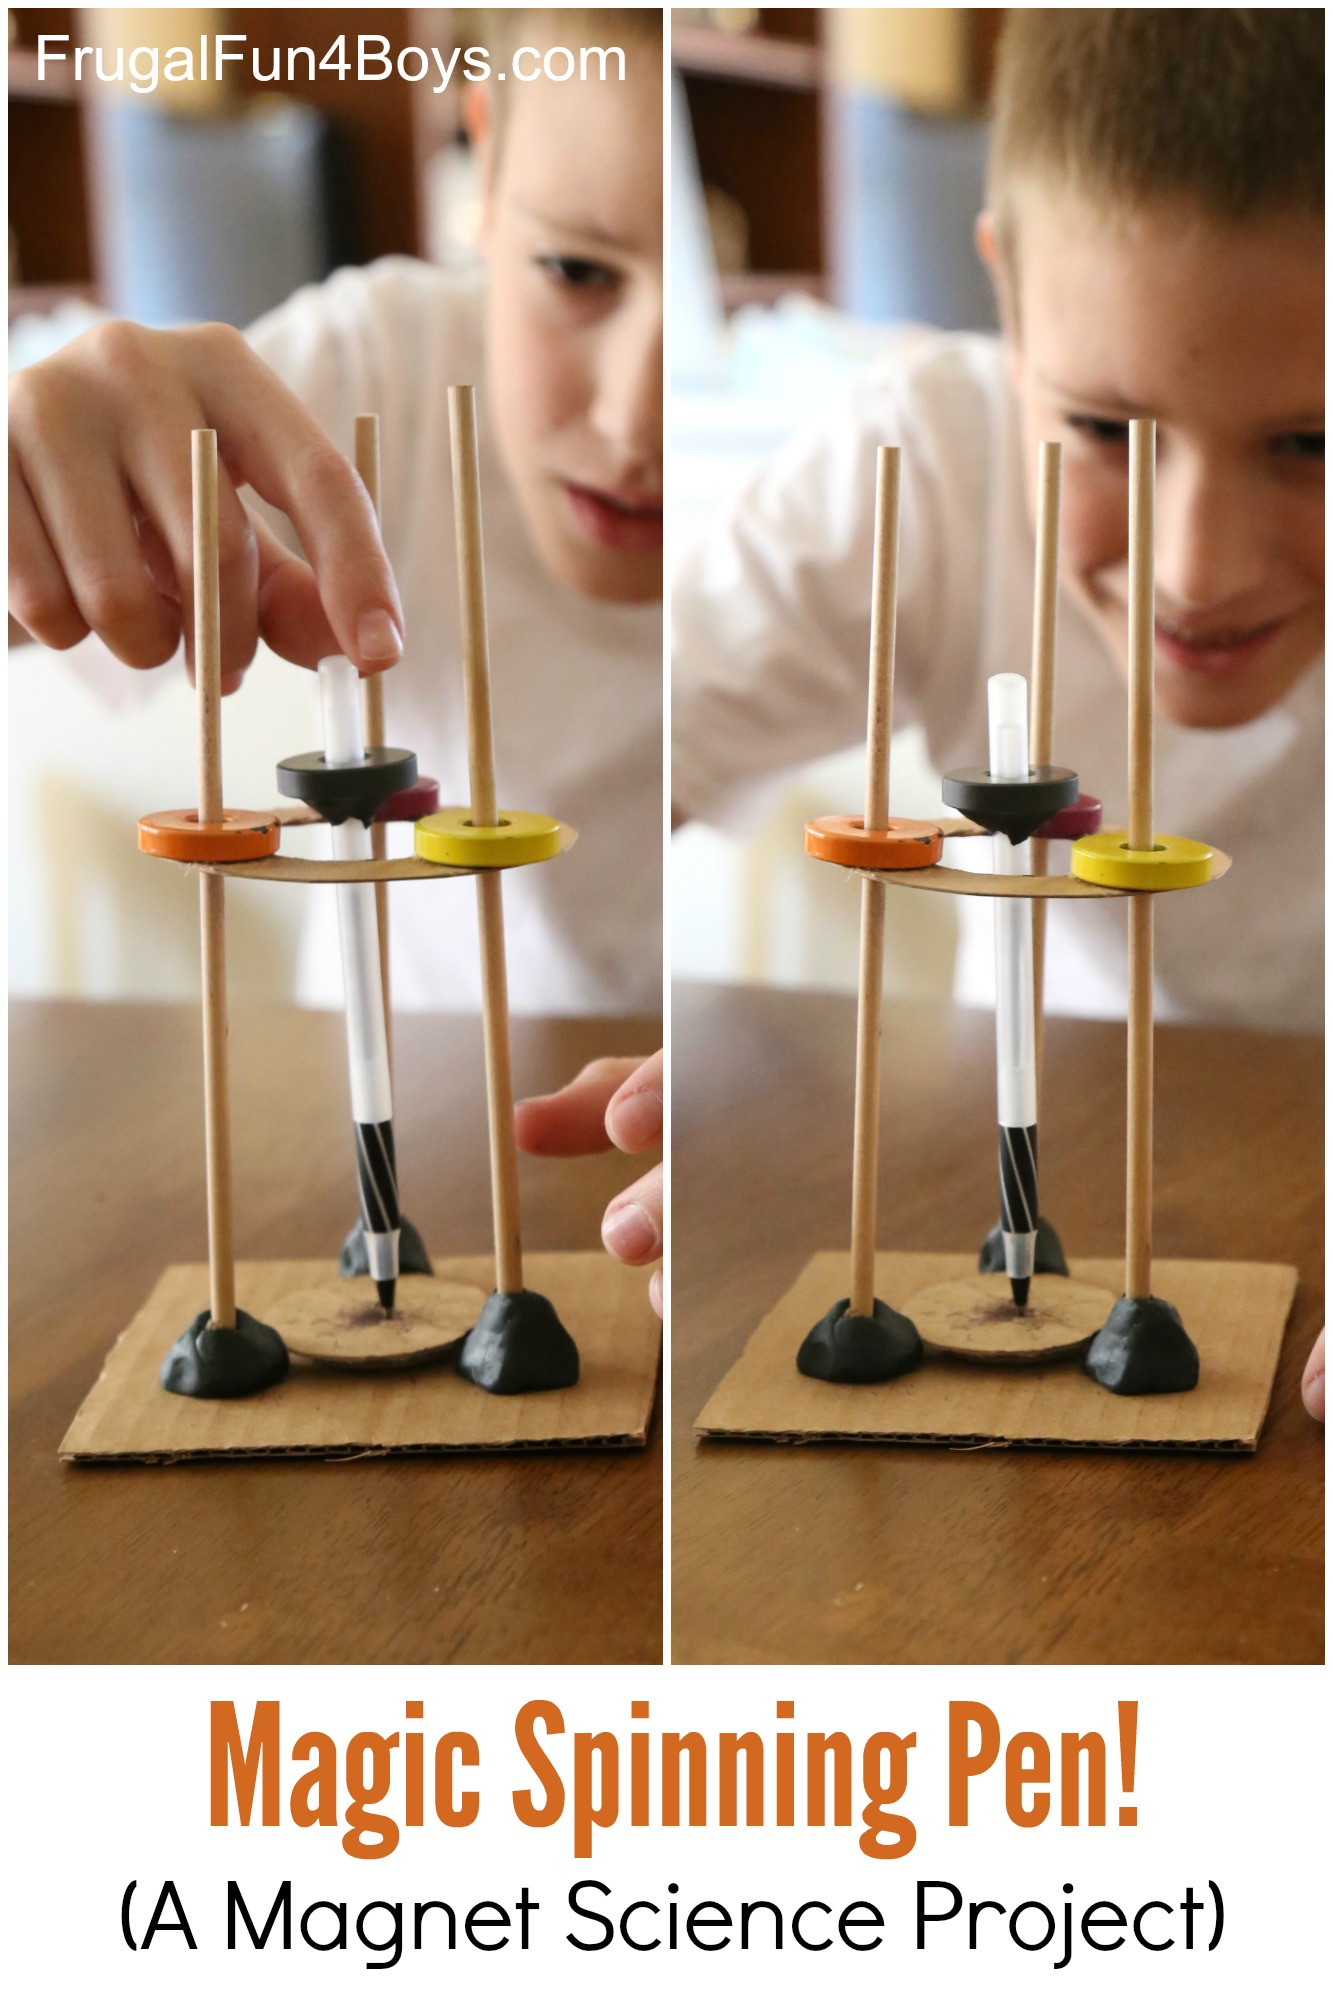 Magic Spinning Pen - A Magnet Science Experiment for Kids!